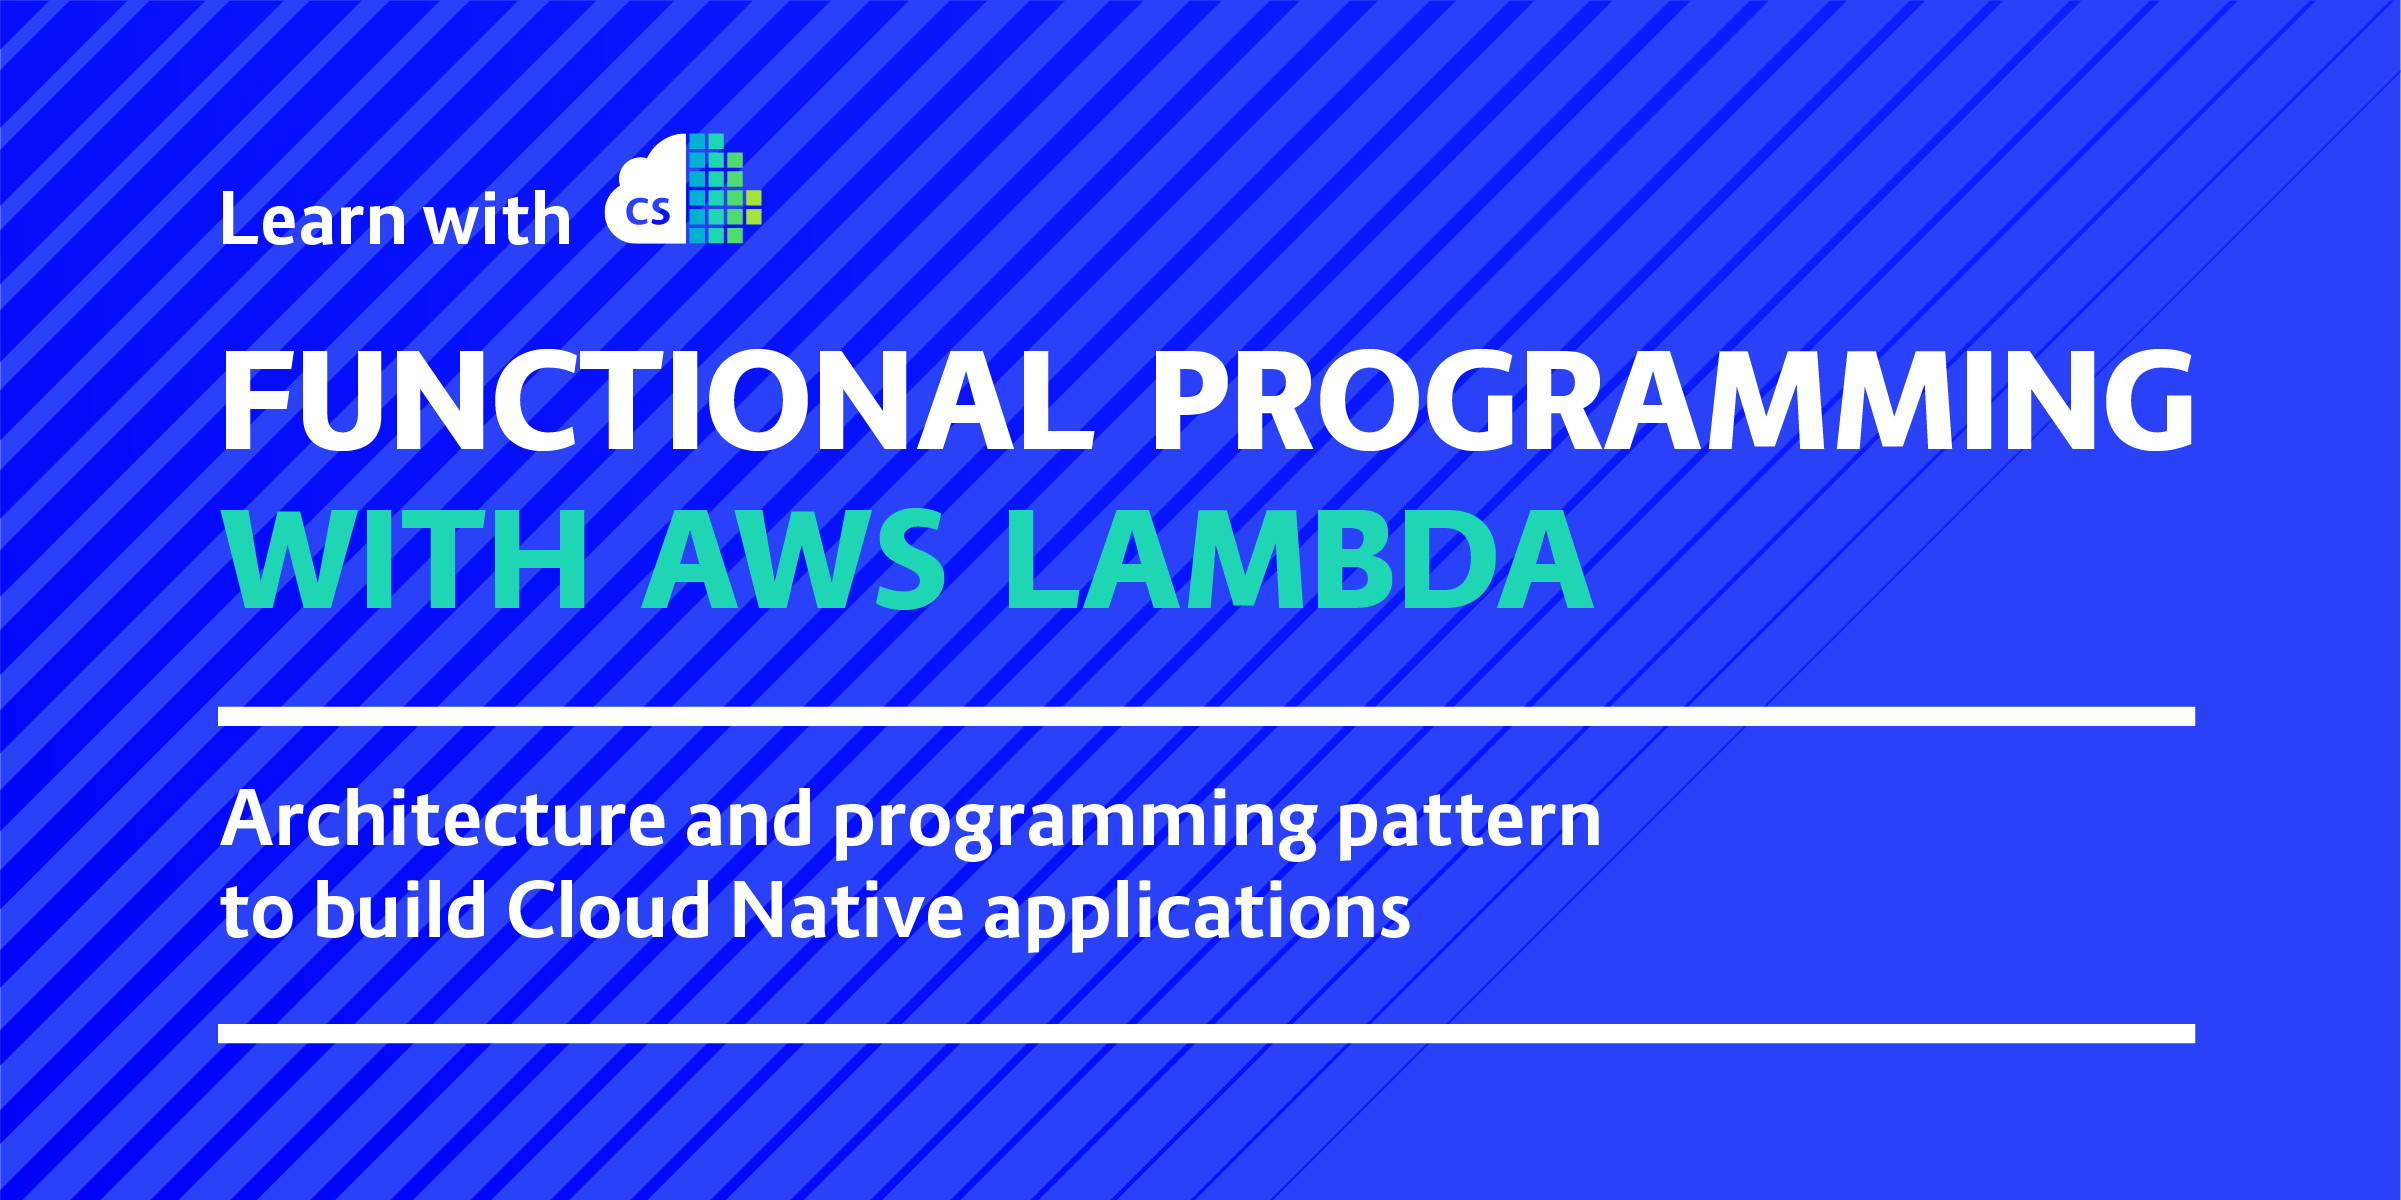 Using Functional Programming When Building Cloud Native Applications with AWS Lambda